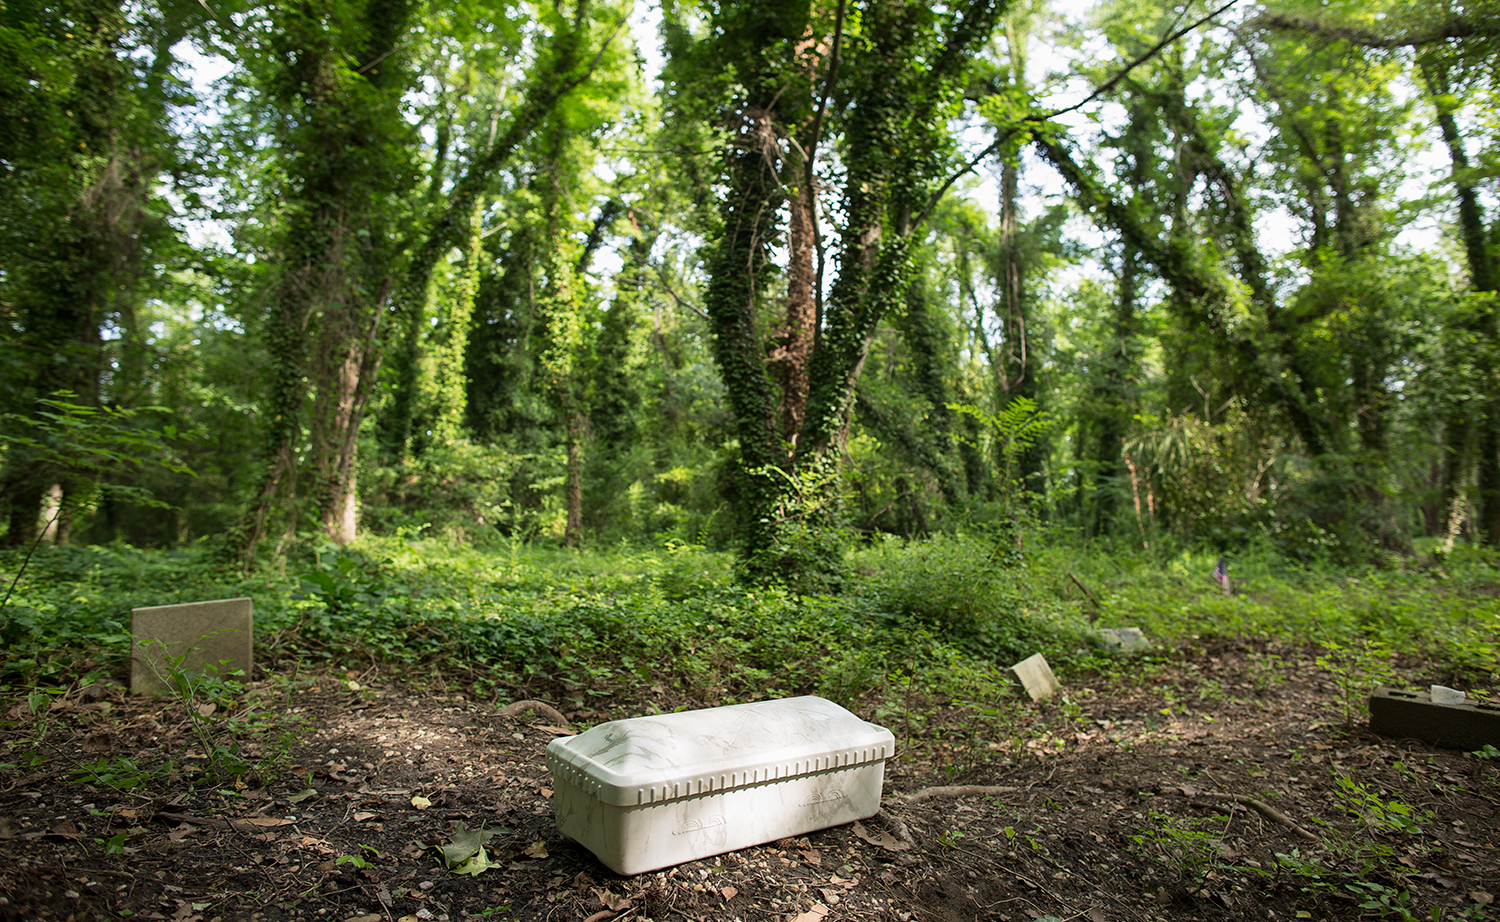 Container holding remains, believed to be those of a child, found above ground by volunteers as they cleared brush in a section of the historic, abandoned African-American cemetery.